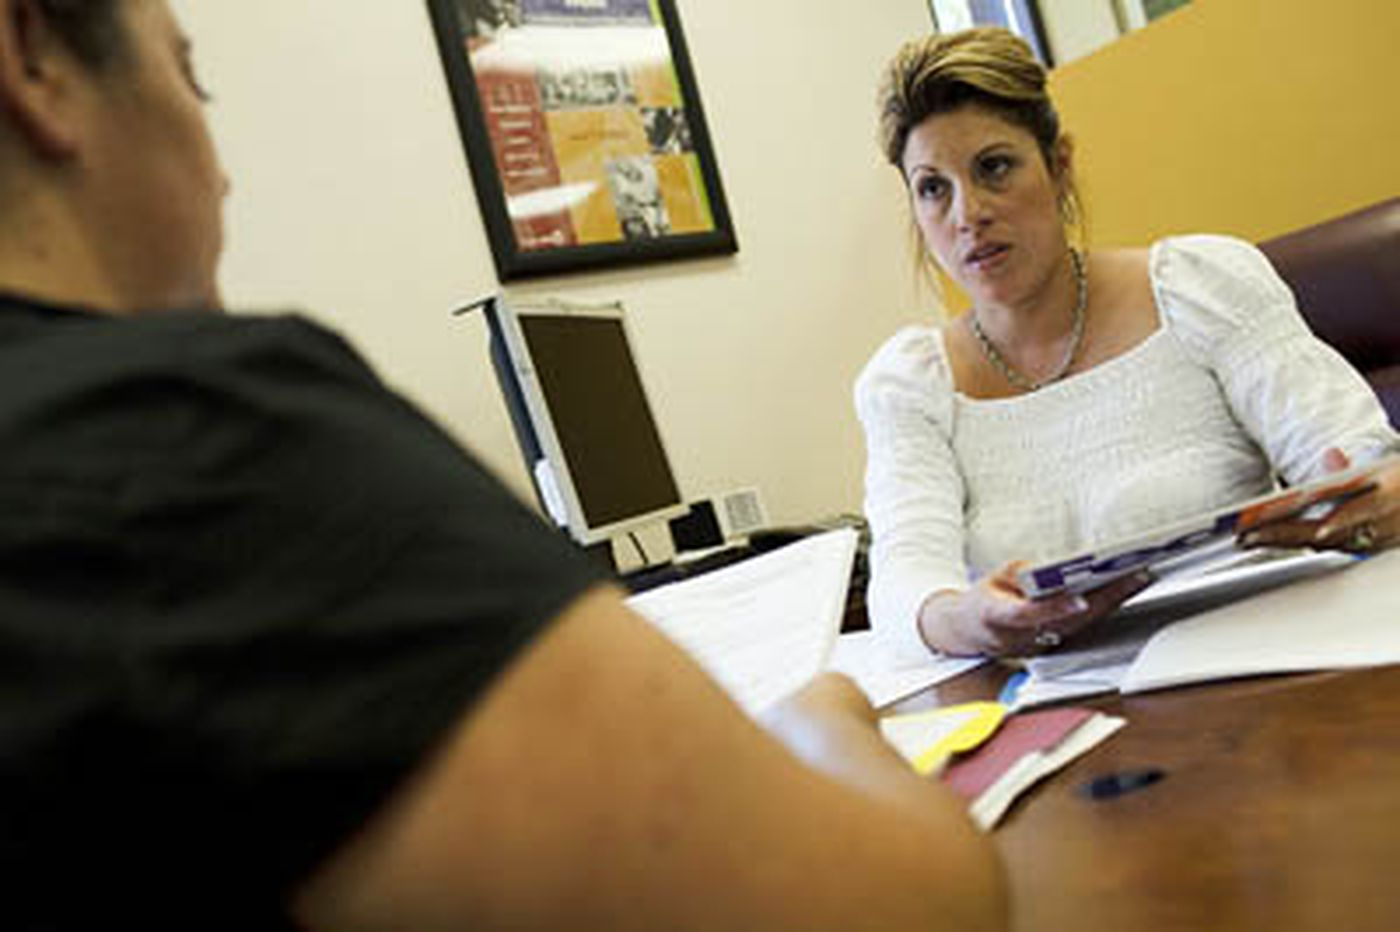 Foreclosure crisis hits home for counselors, too